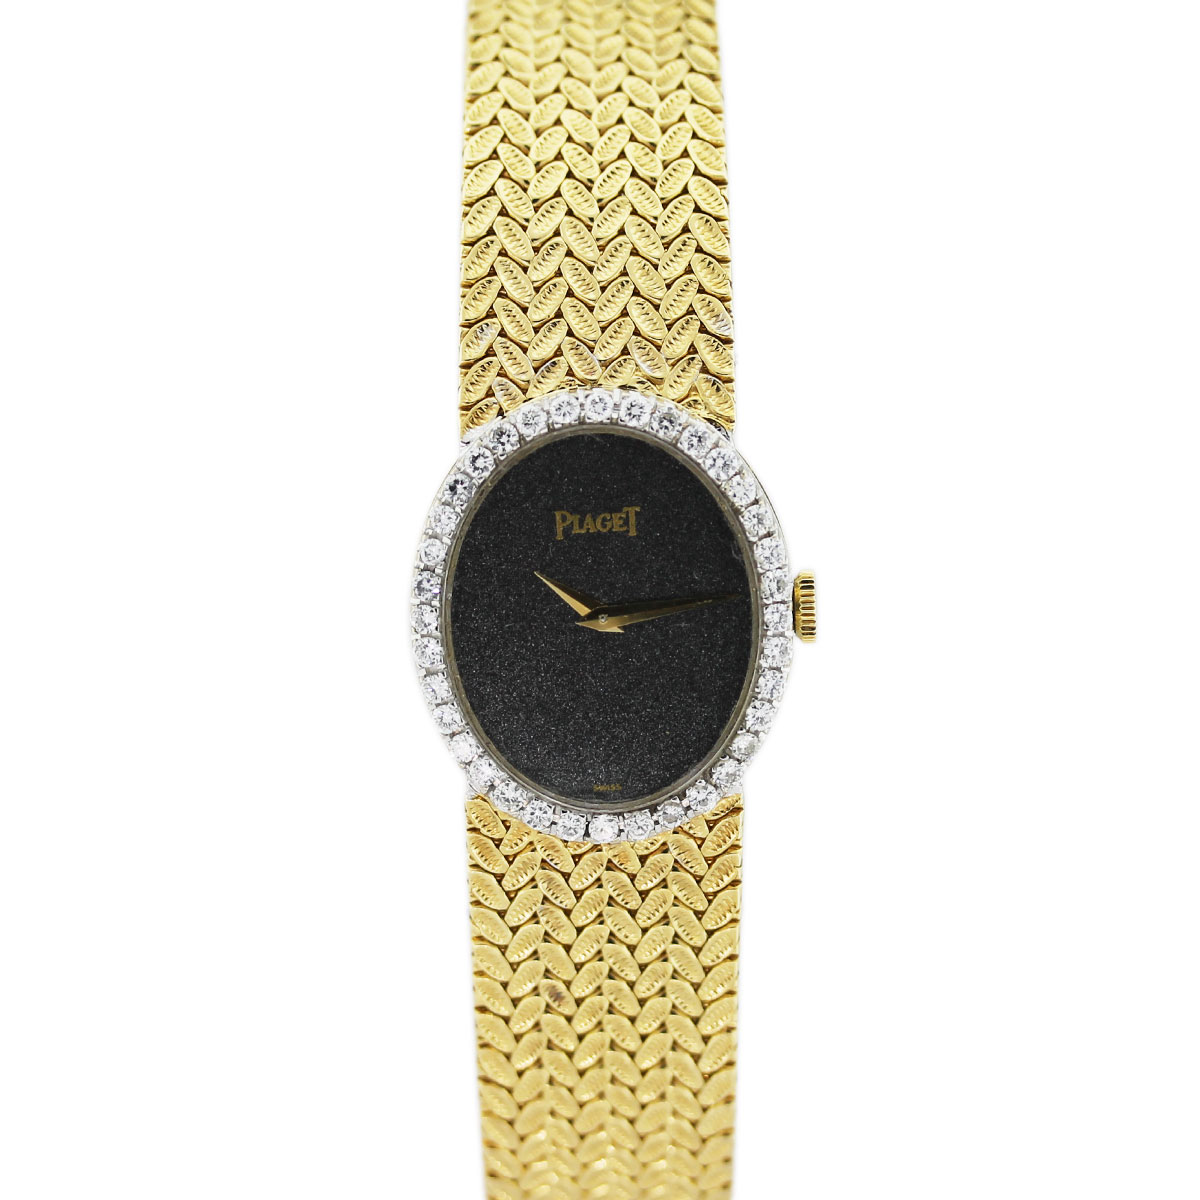 Piaget 18k Yellow Gold Diamond Bezel Watch Raymond Lee